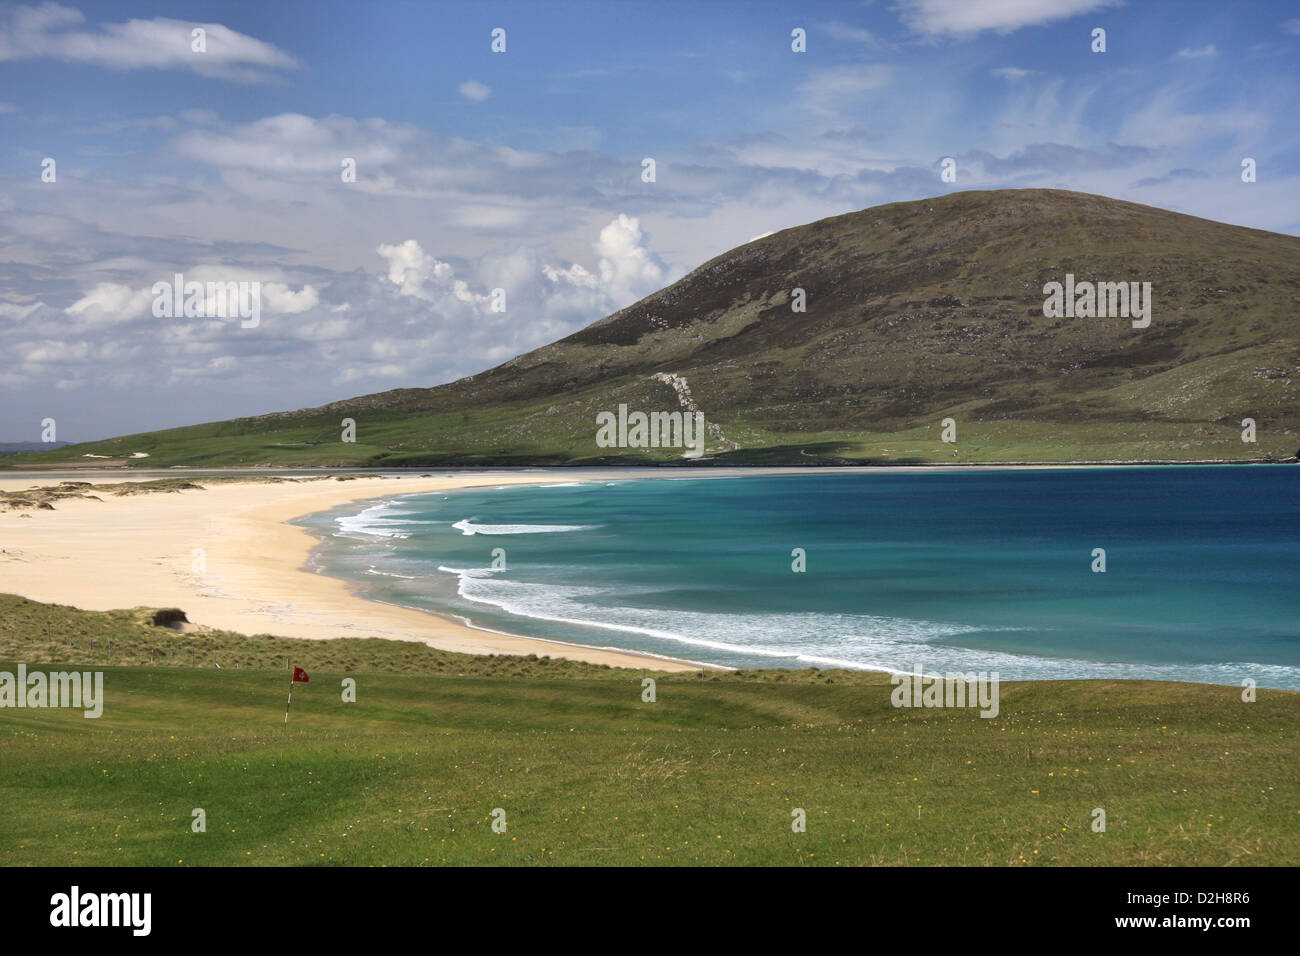 Stunning Scarista beach on the Isle of Harris, Outer Hebrides, Scotland - Stock Image